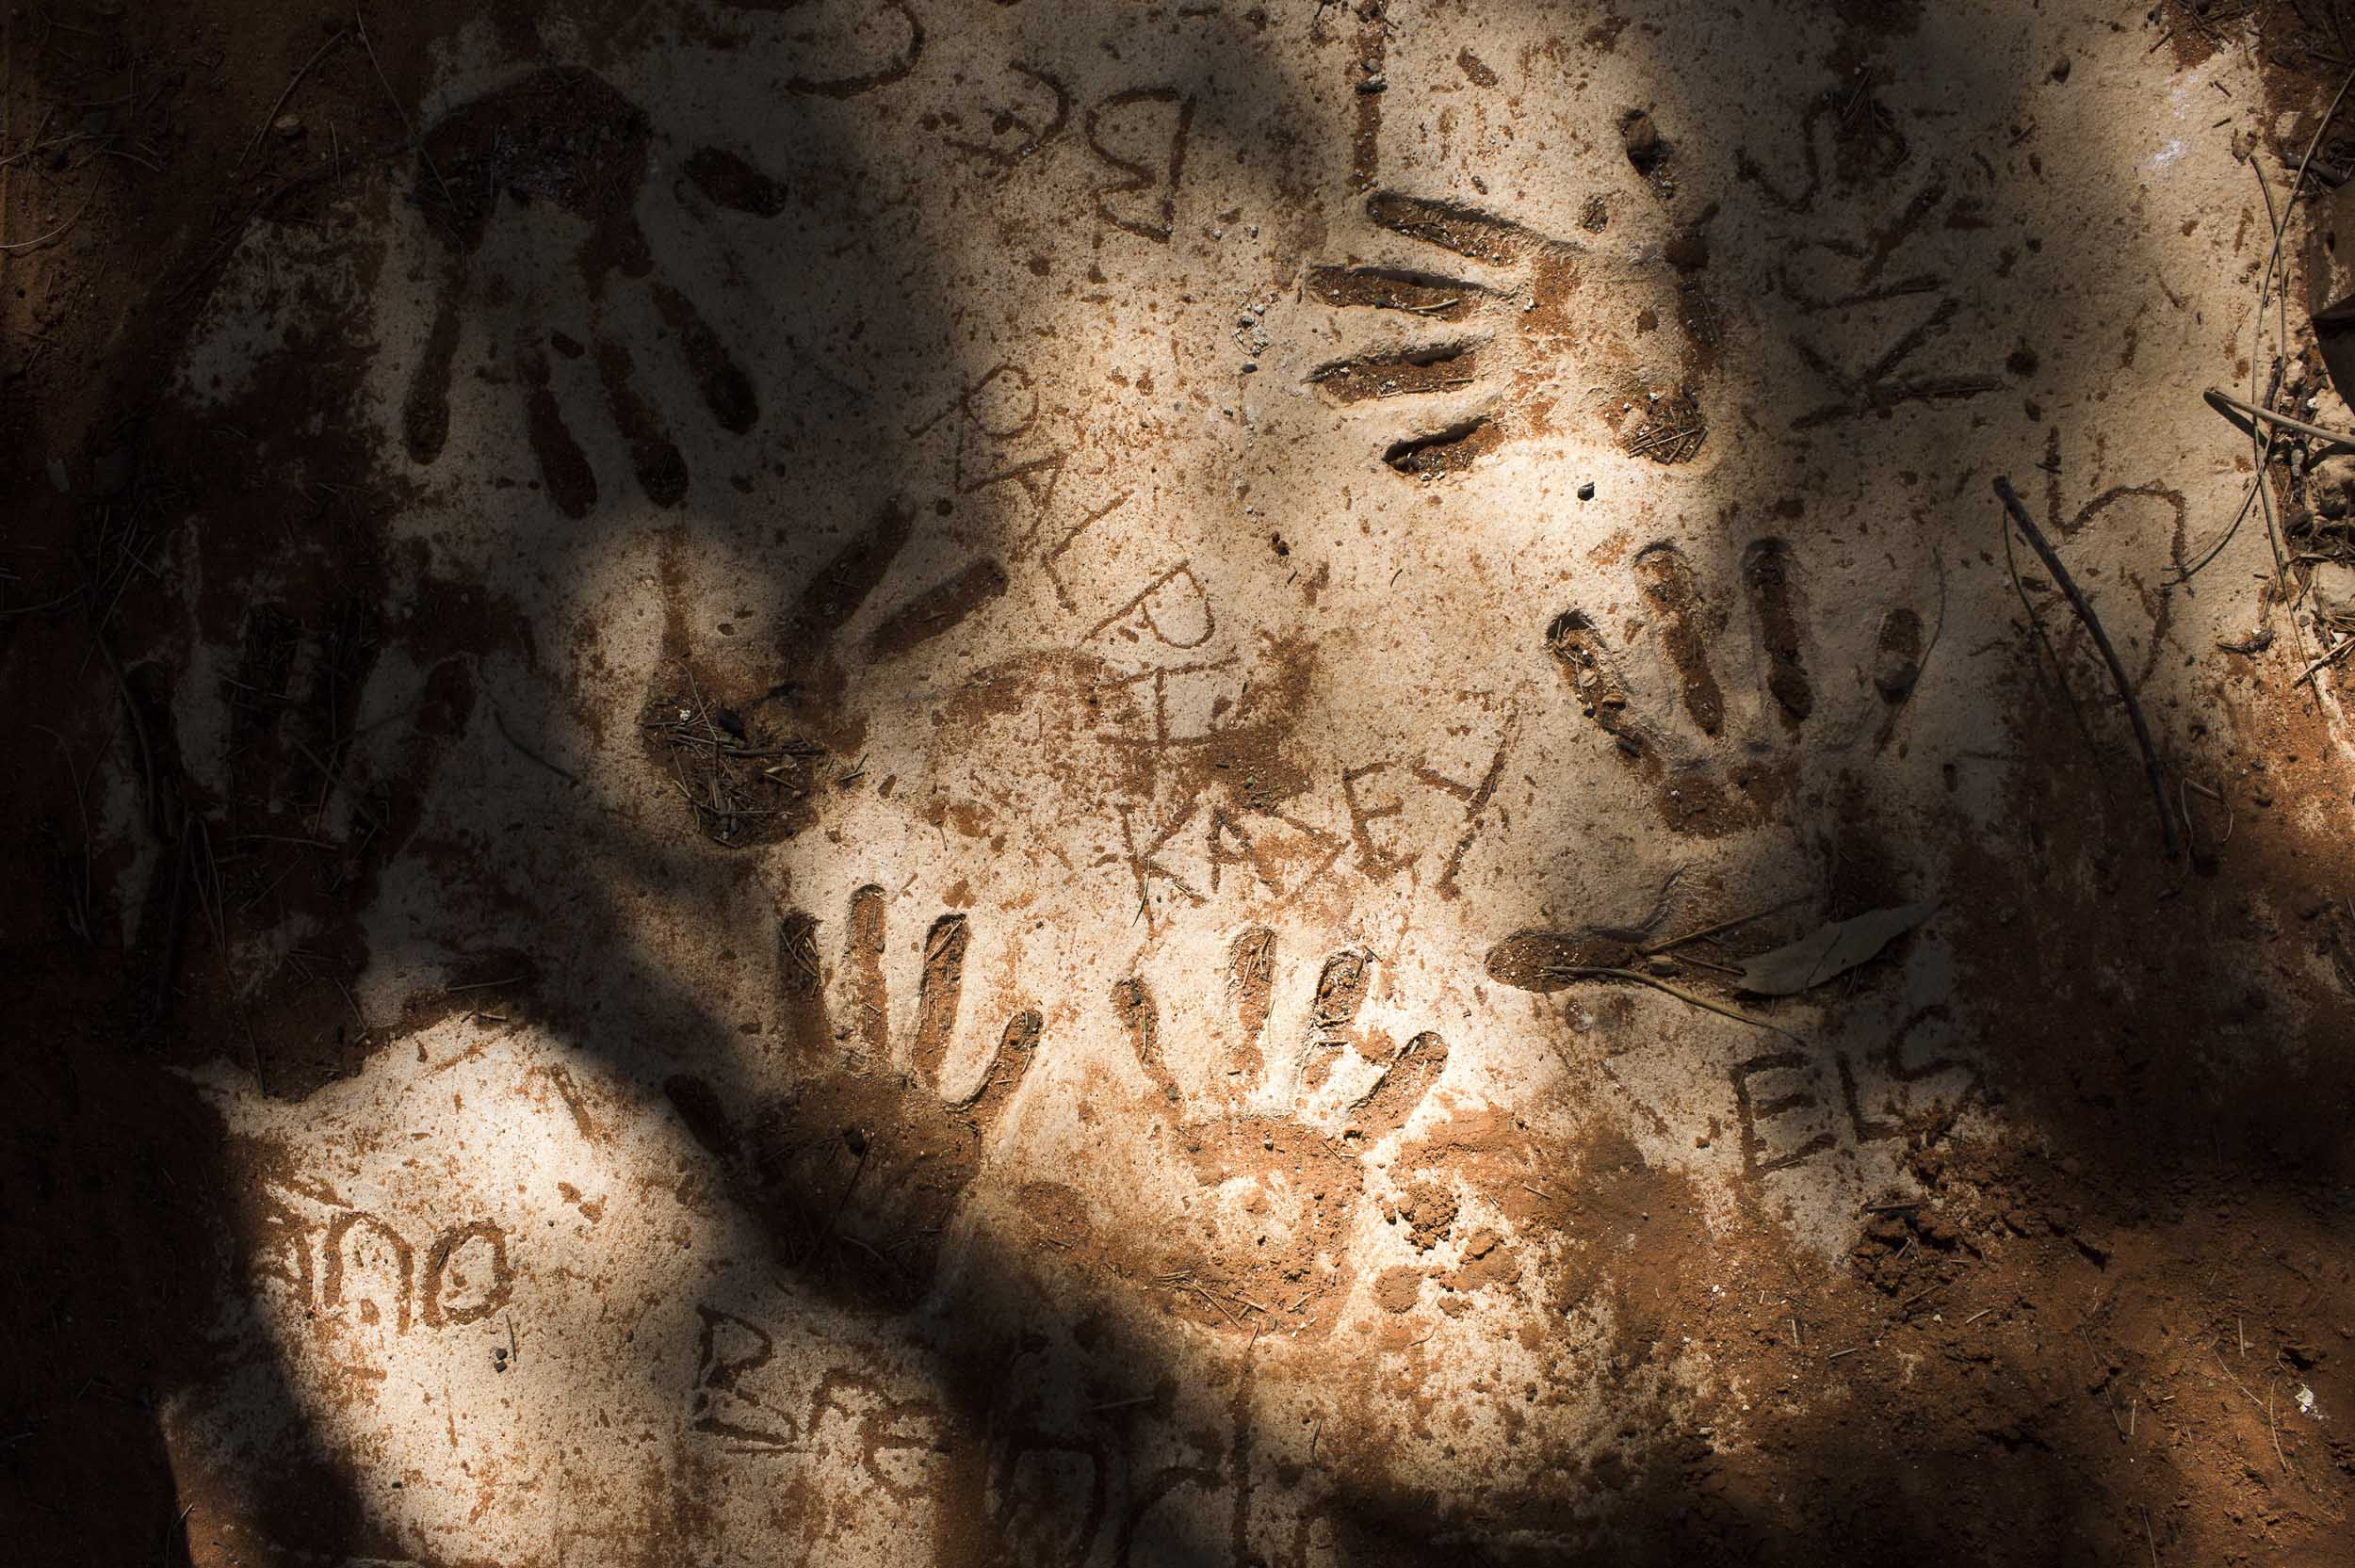 An Aboriginal families hand prints immortalized in a concrete at their home in Wilcannia, NSW.